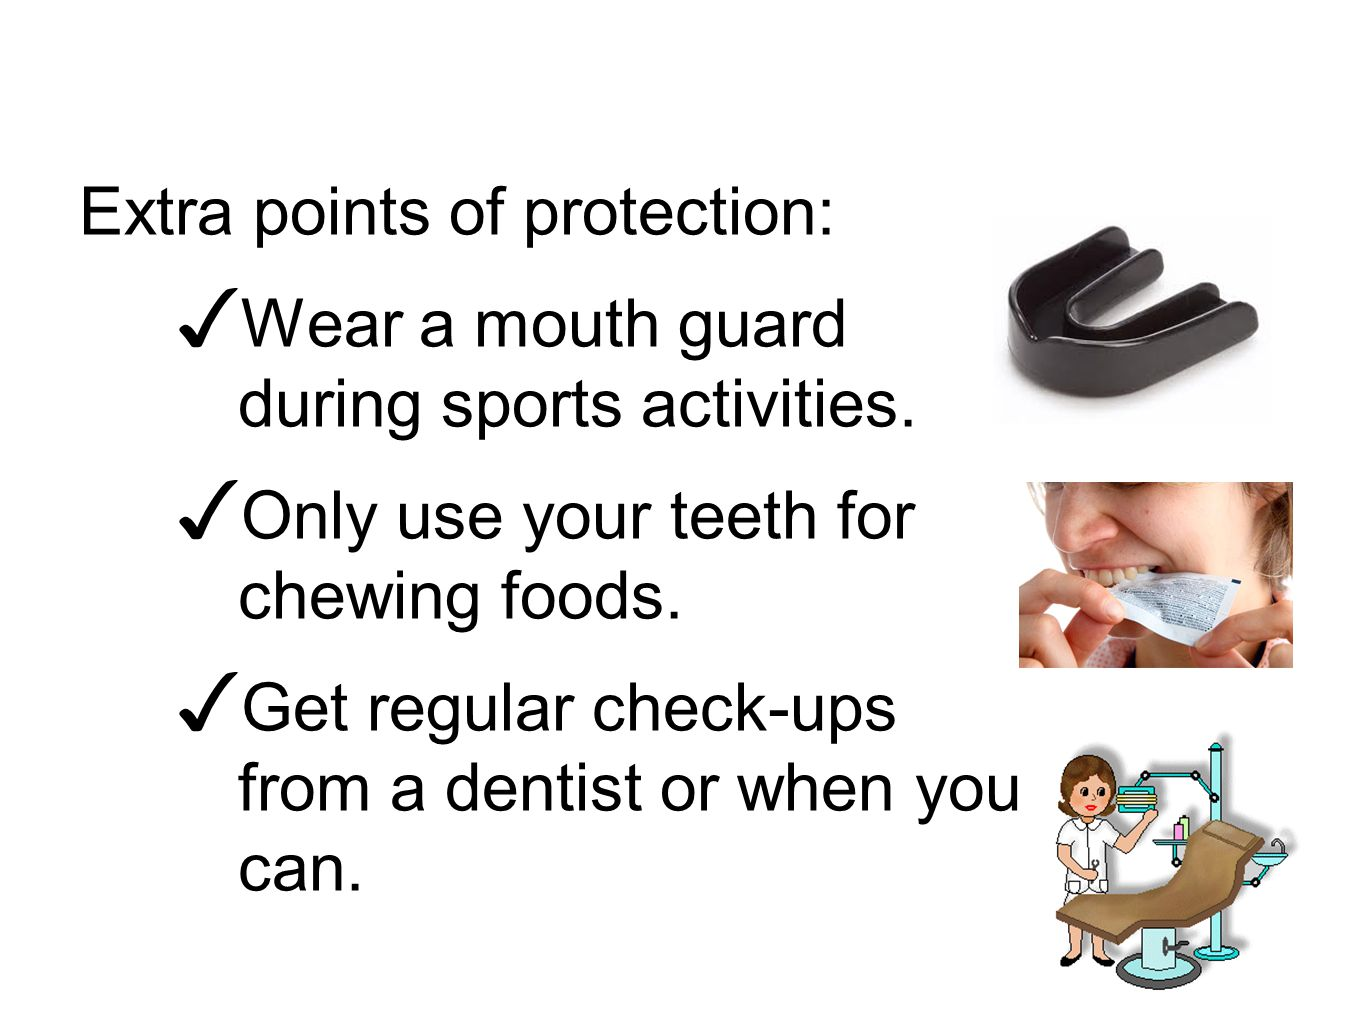 Extra points of protection: